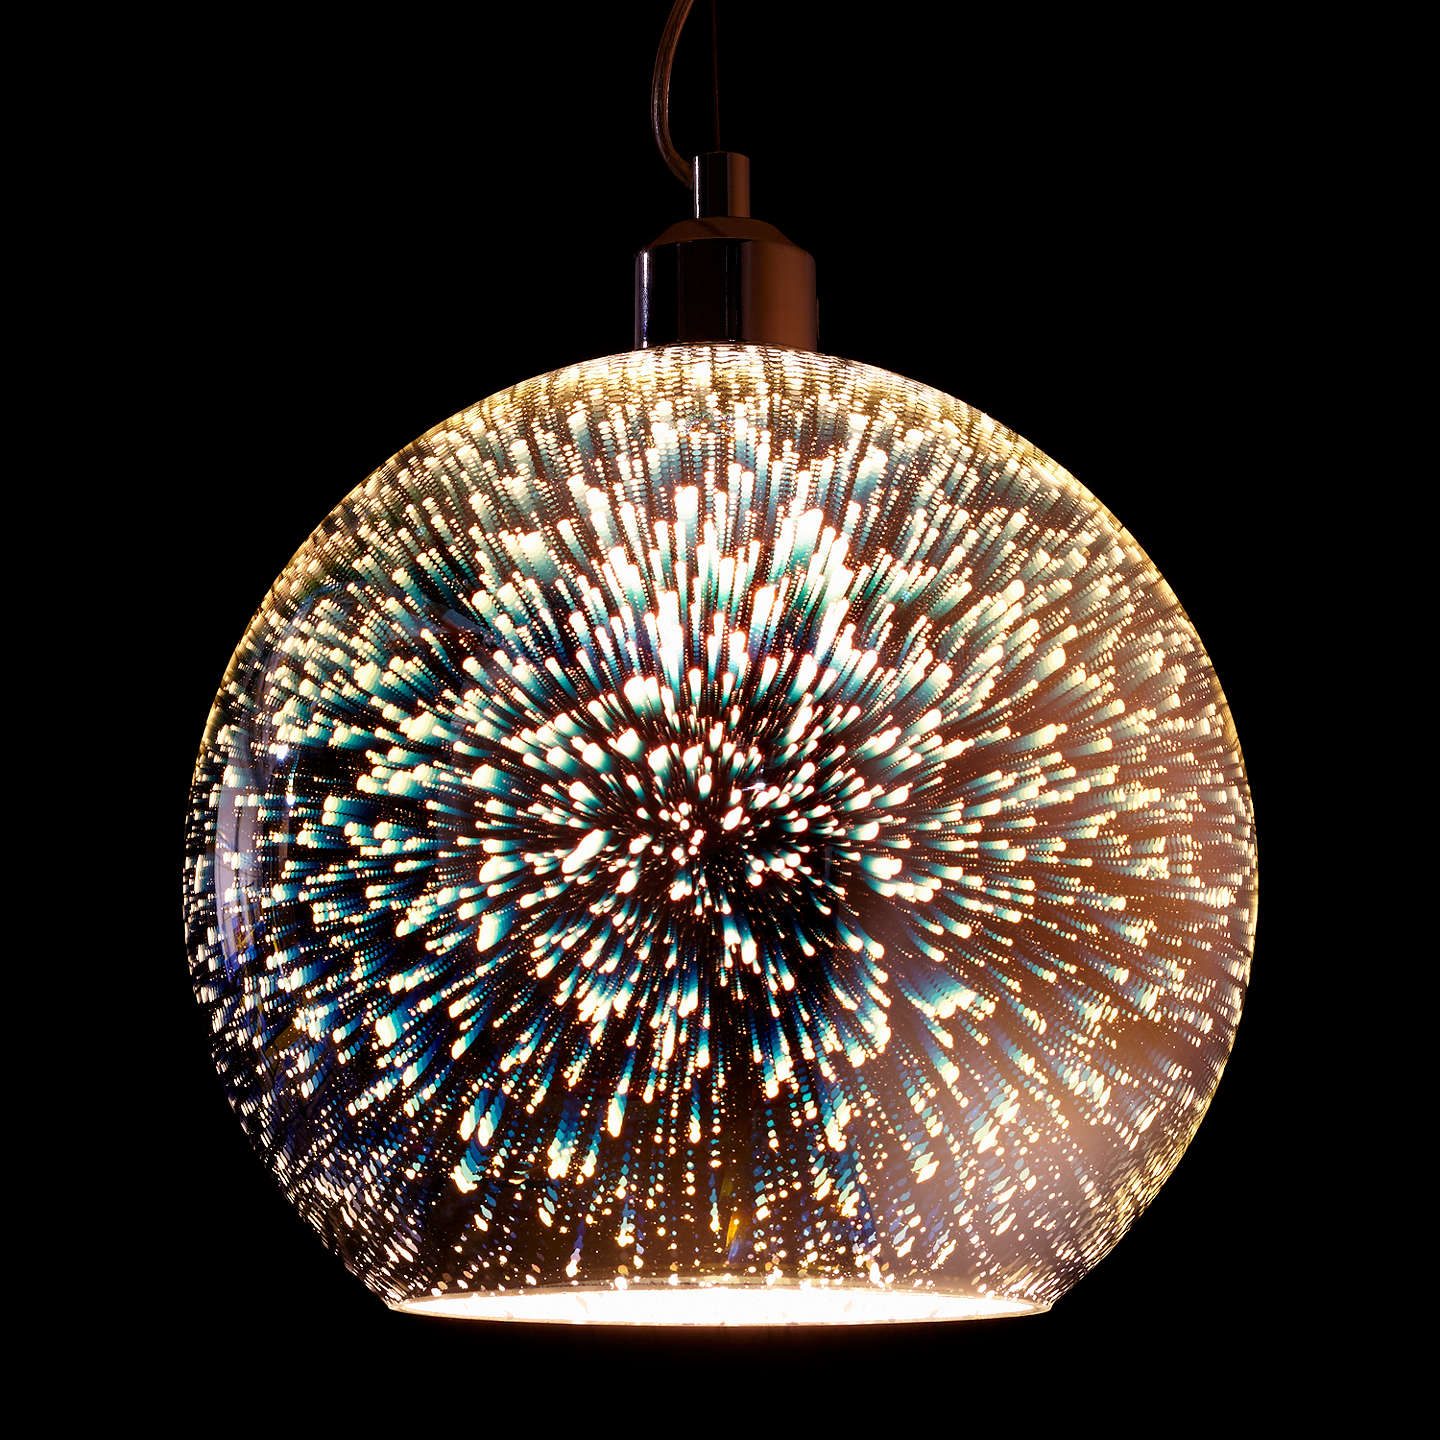 John lewis oberon holographic pendant ceiling light multi at john lewis buyjohn lewis oberon holographic pendant ceiling light multi online at johnlewis mozeypictures Image collections